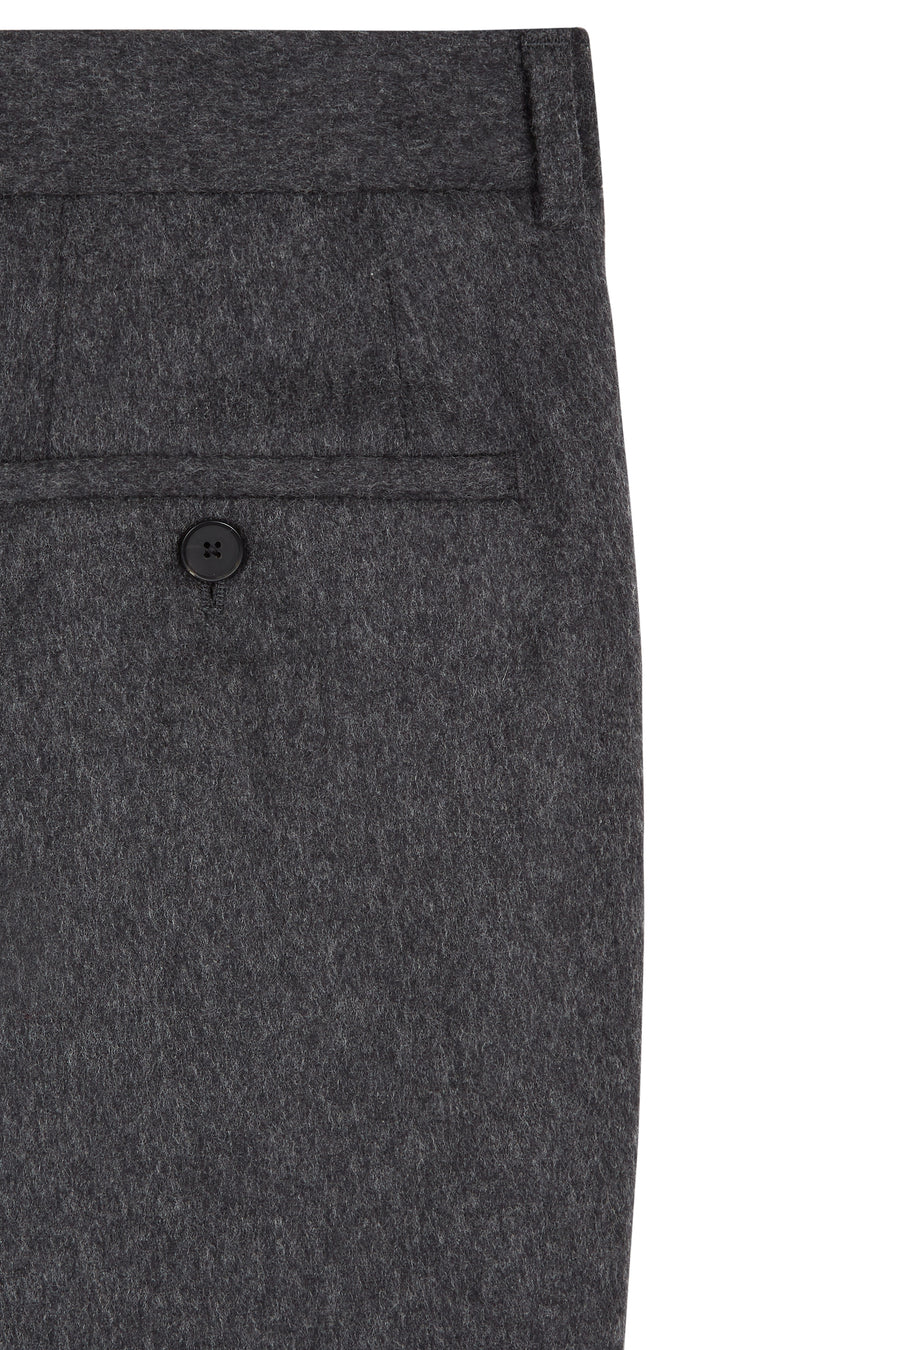 Charcoal Perri Flannel Trouser Suit